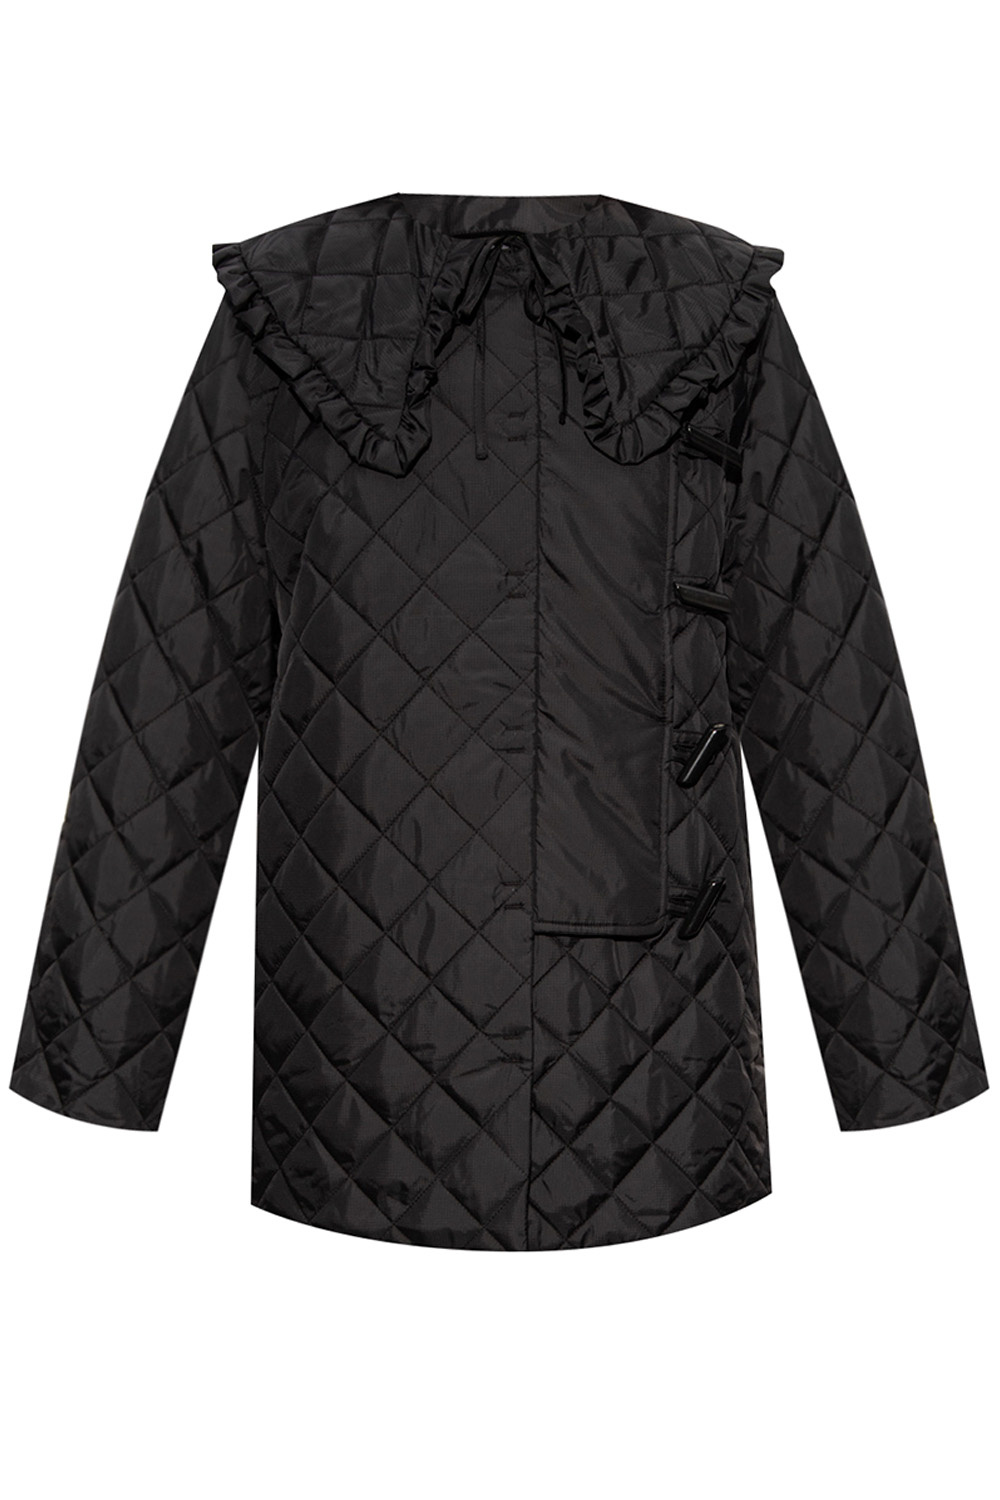 Ganni Quilted jacket